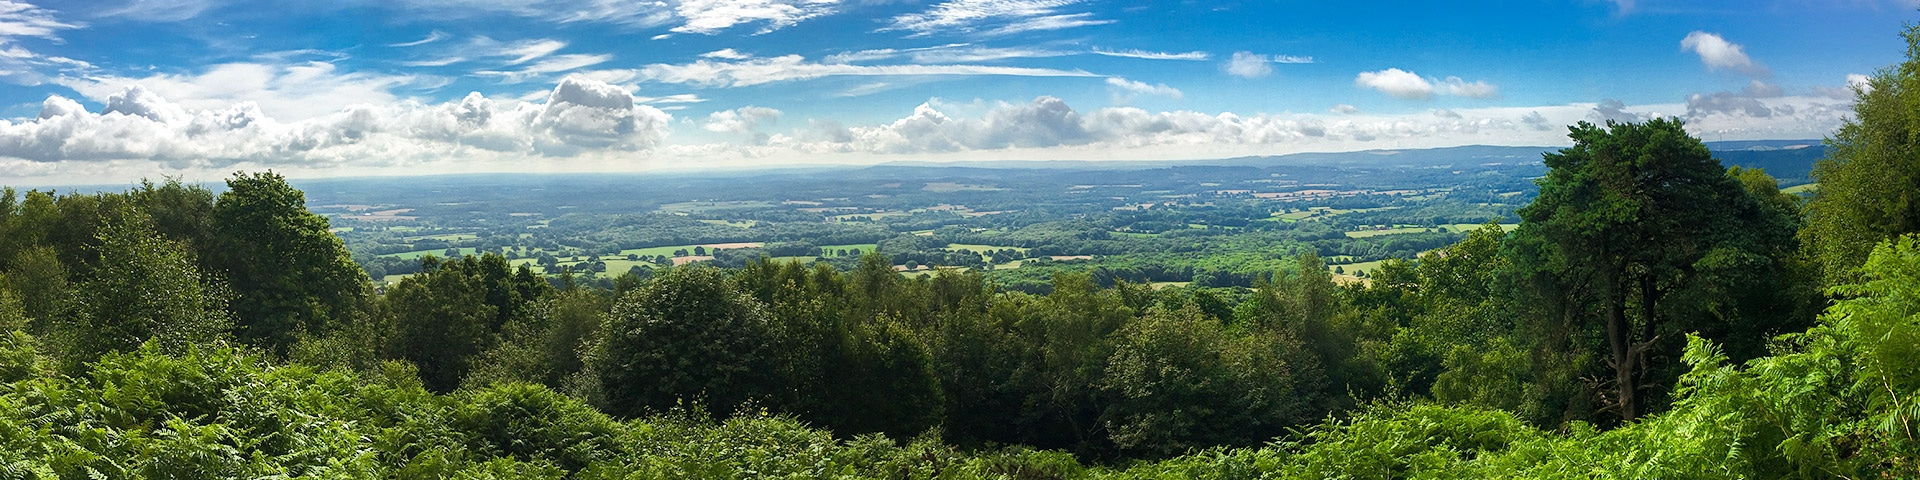 Best hikes in South Downs, England